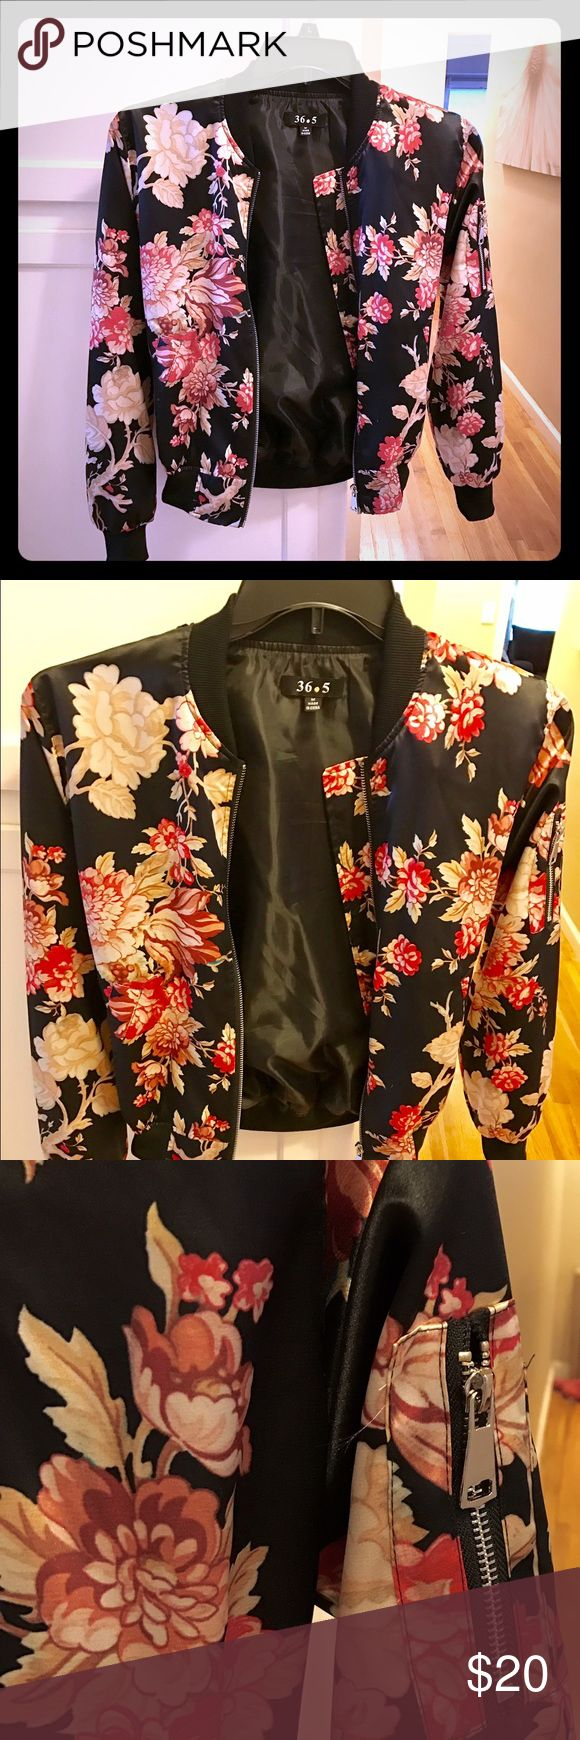 Satin like floral bomber jacket Very pretty lightweight gold, red and black bomber jacket.  Only worn once. 36.5 Jackets & Coats